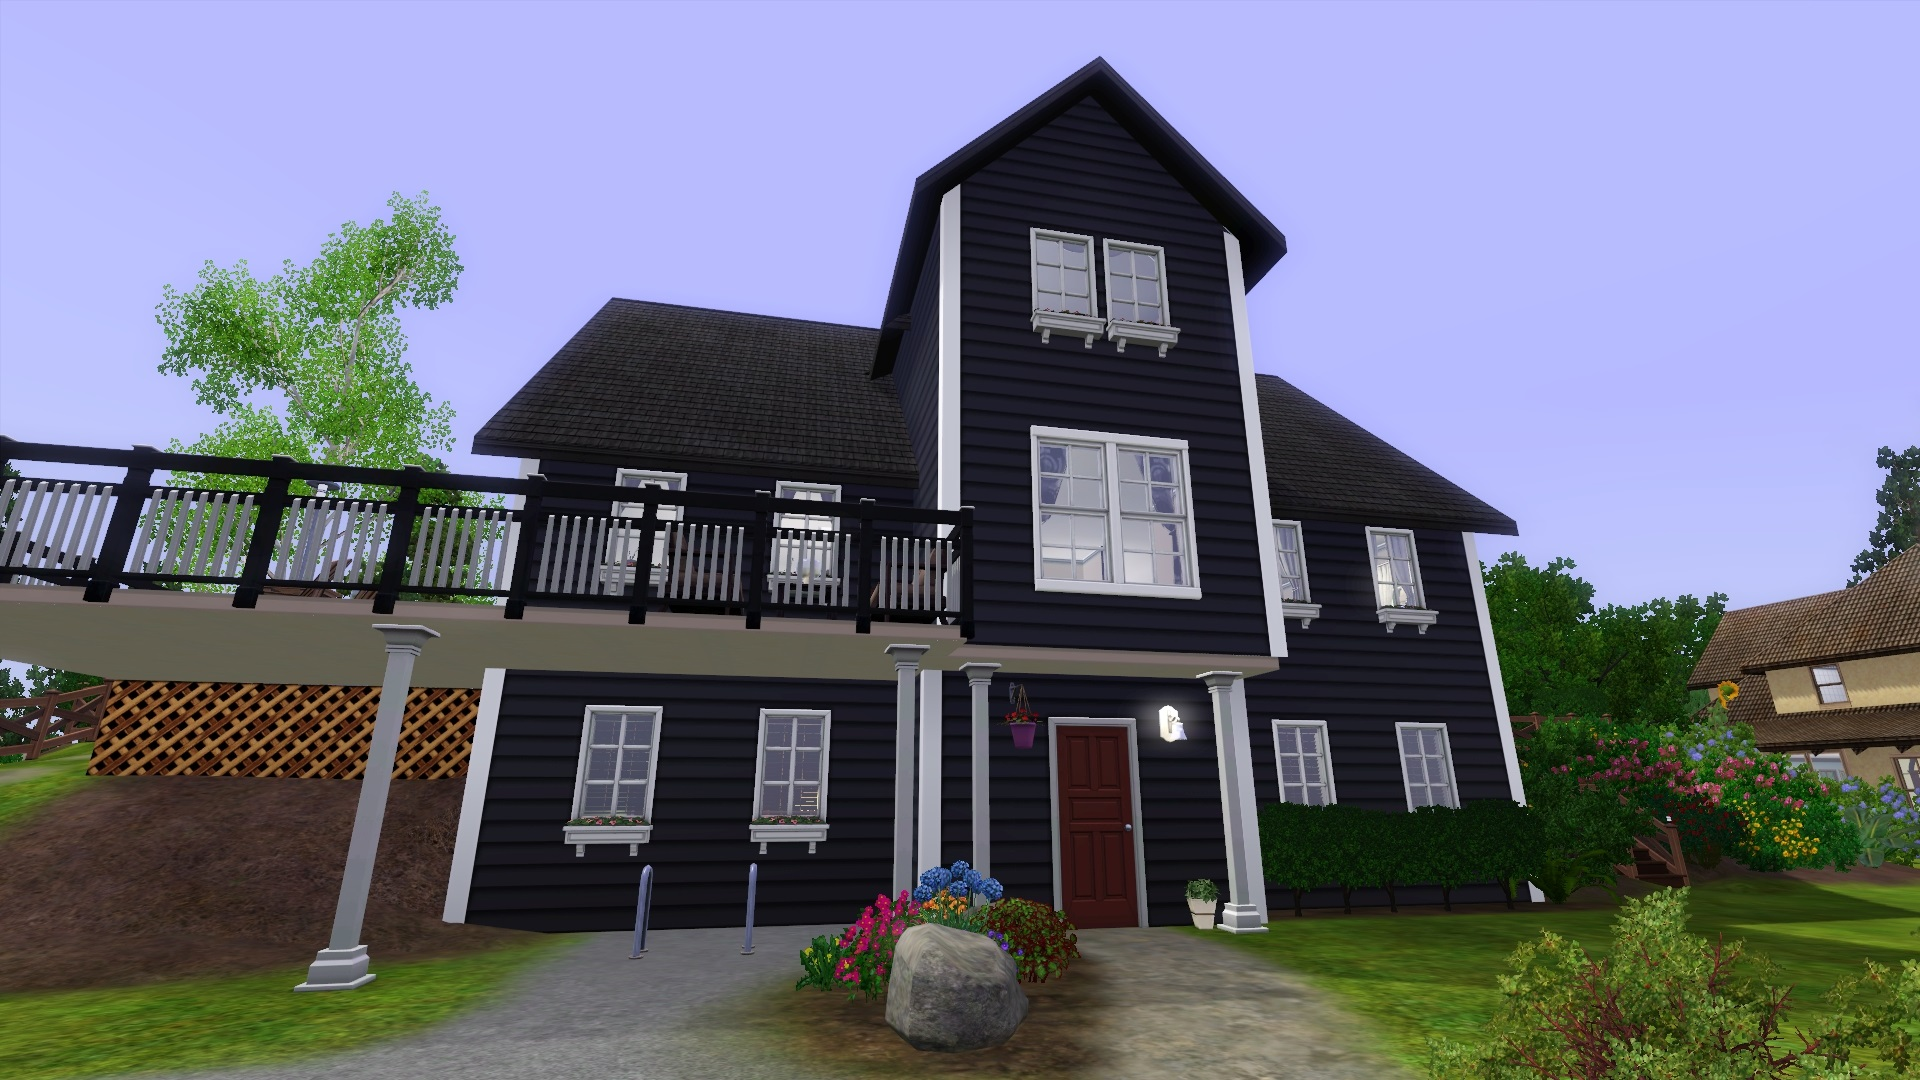 being tired of white houses i wanted the house to look different but not stand out too much so i painted it black with some white trim